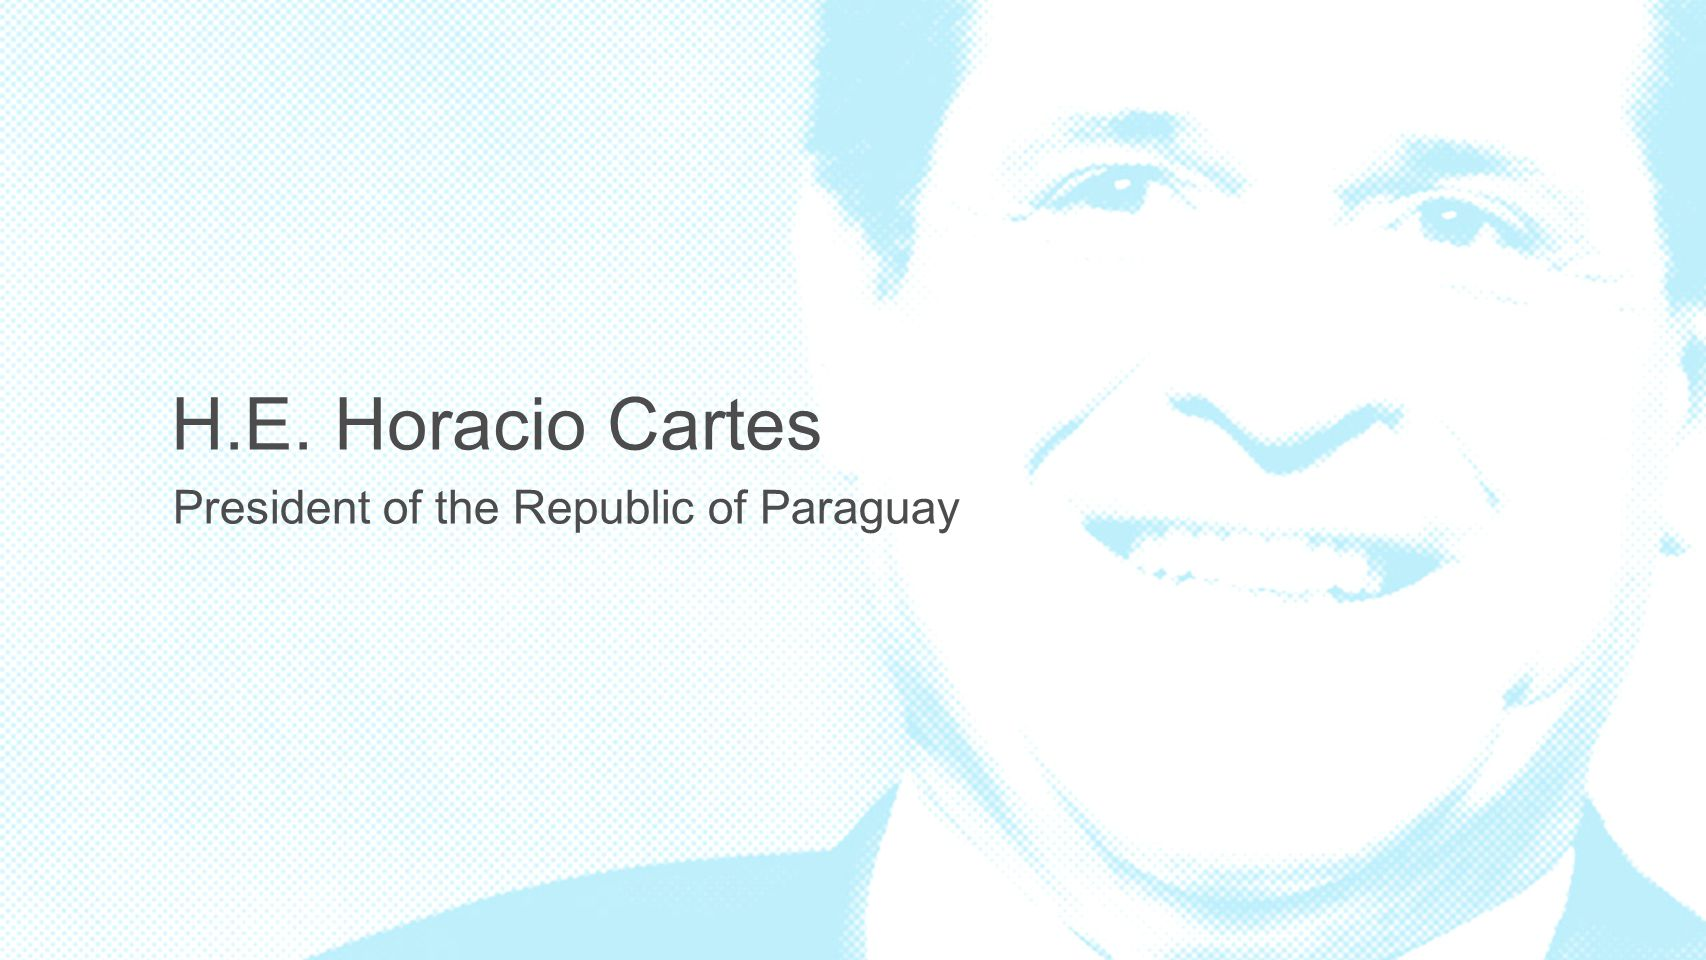 President of the Republic of Paraguay H.E. Horacio Cartes